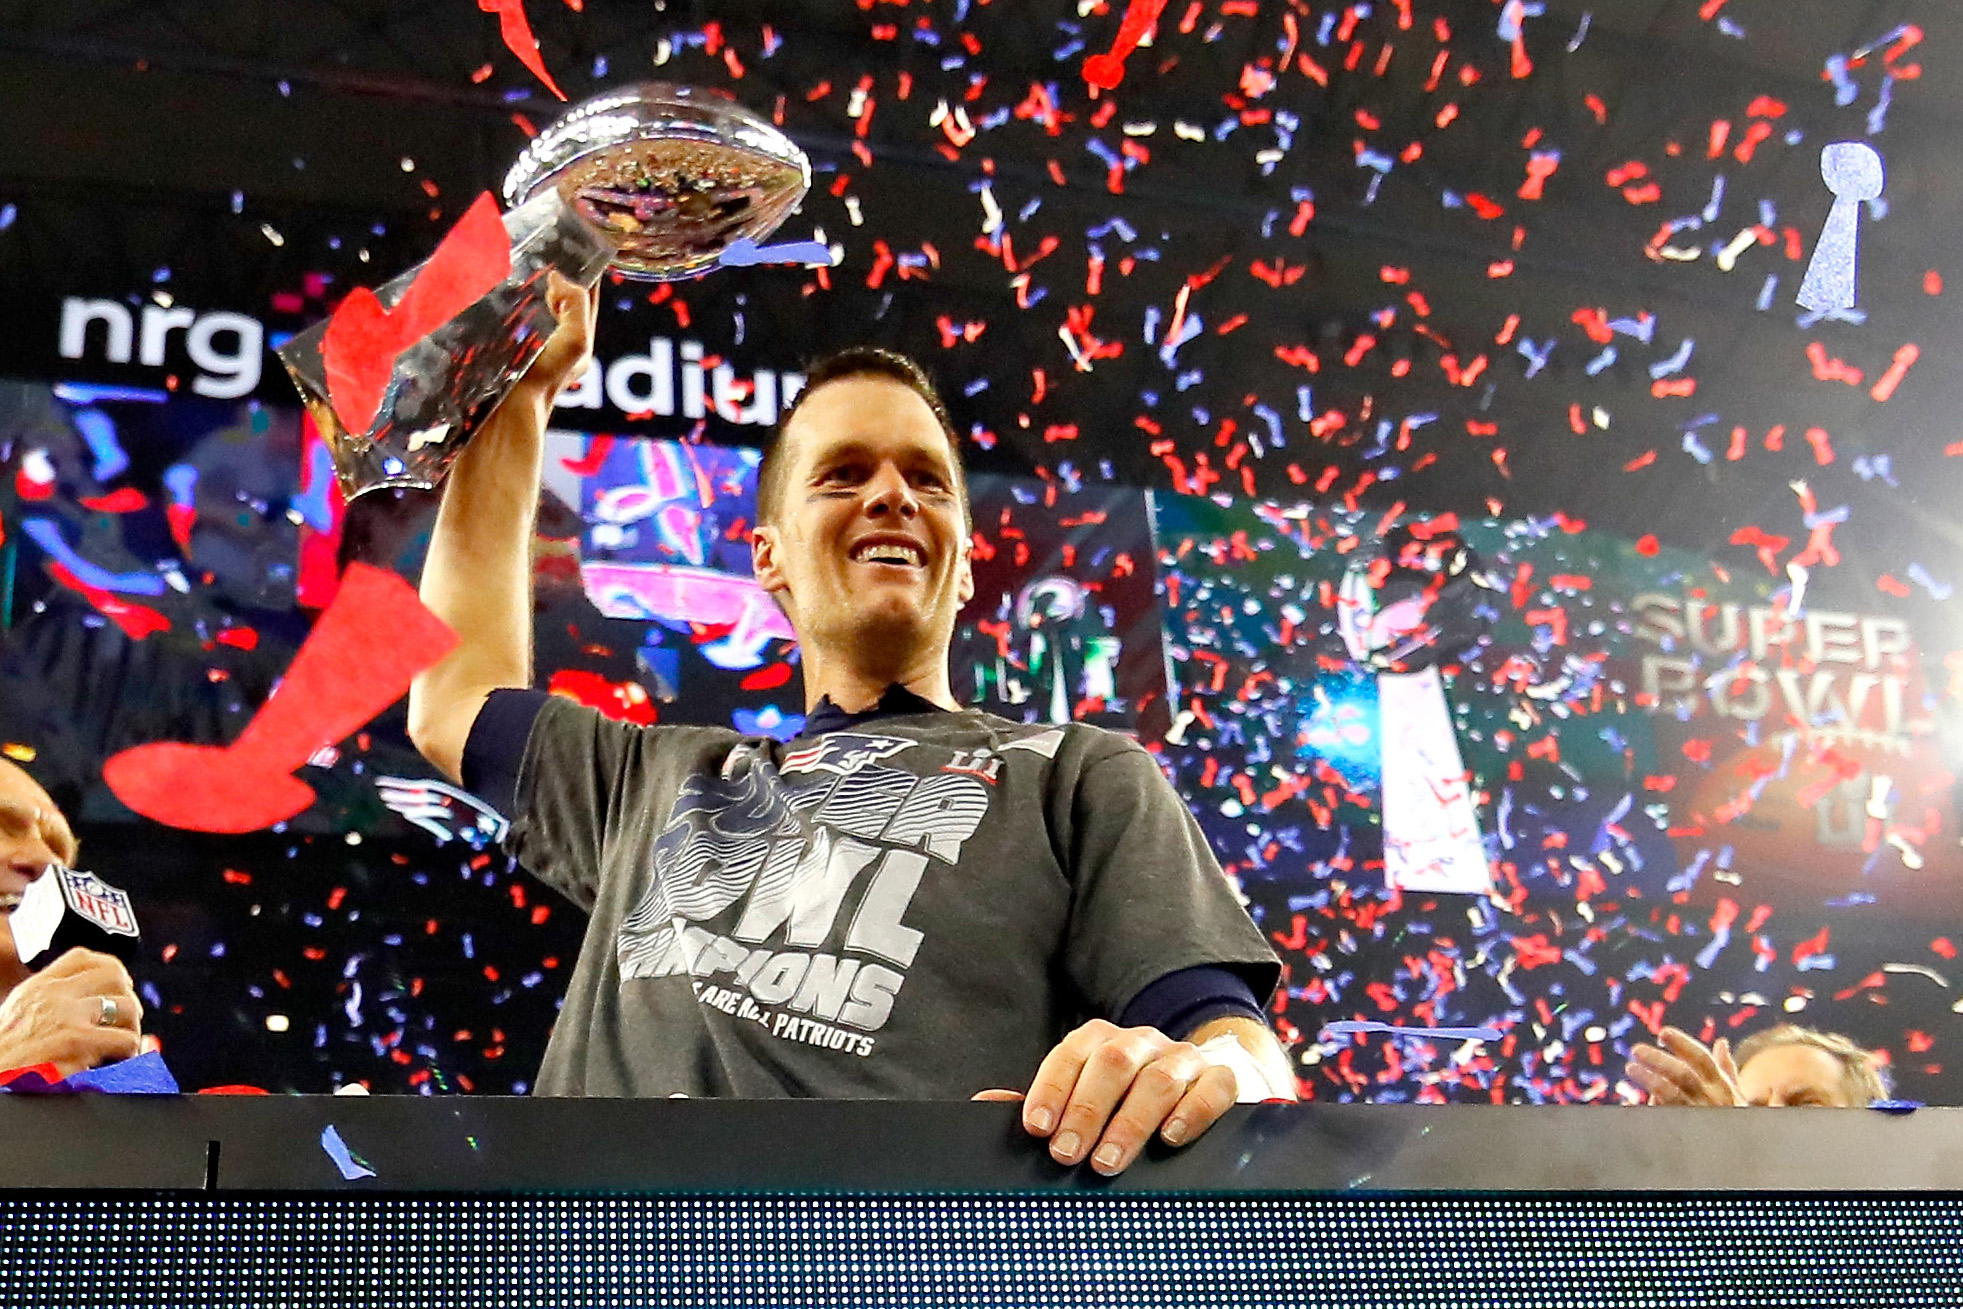 Tom Brady #12 of the New England Patriots celebrates with the Vince Lombardi Trophy after defeating the Atlanta Falcons during Super Bowl 51 at NRG Stadium on February 5, 2017 in Houston, Texas.